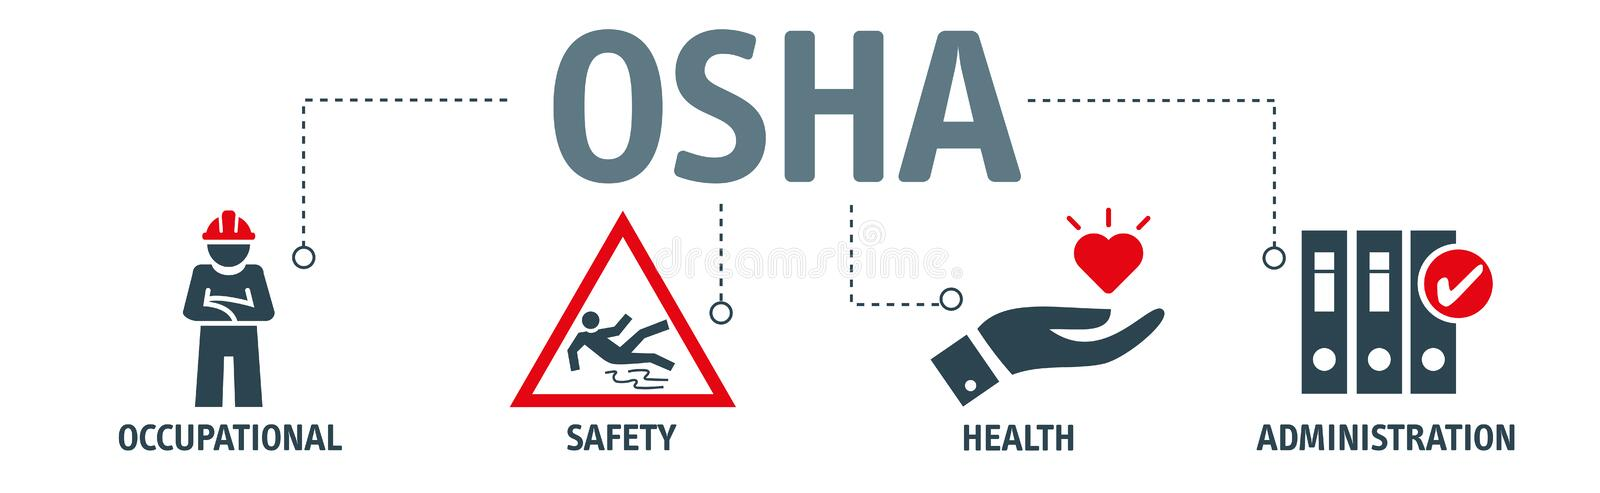 OSHA - Occupational Safety and Health Administration Banner royalty free illustration